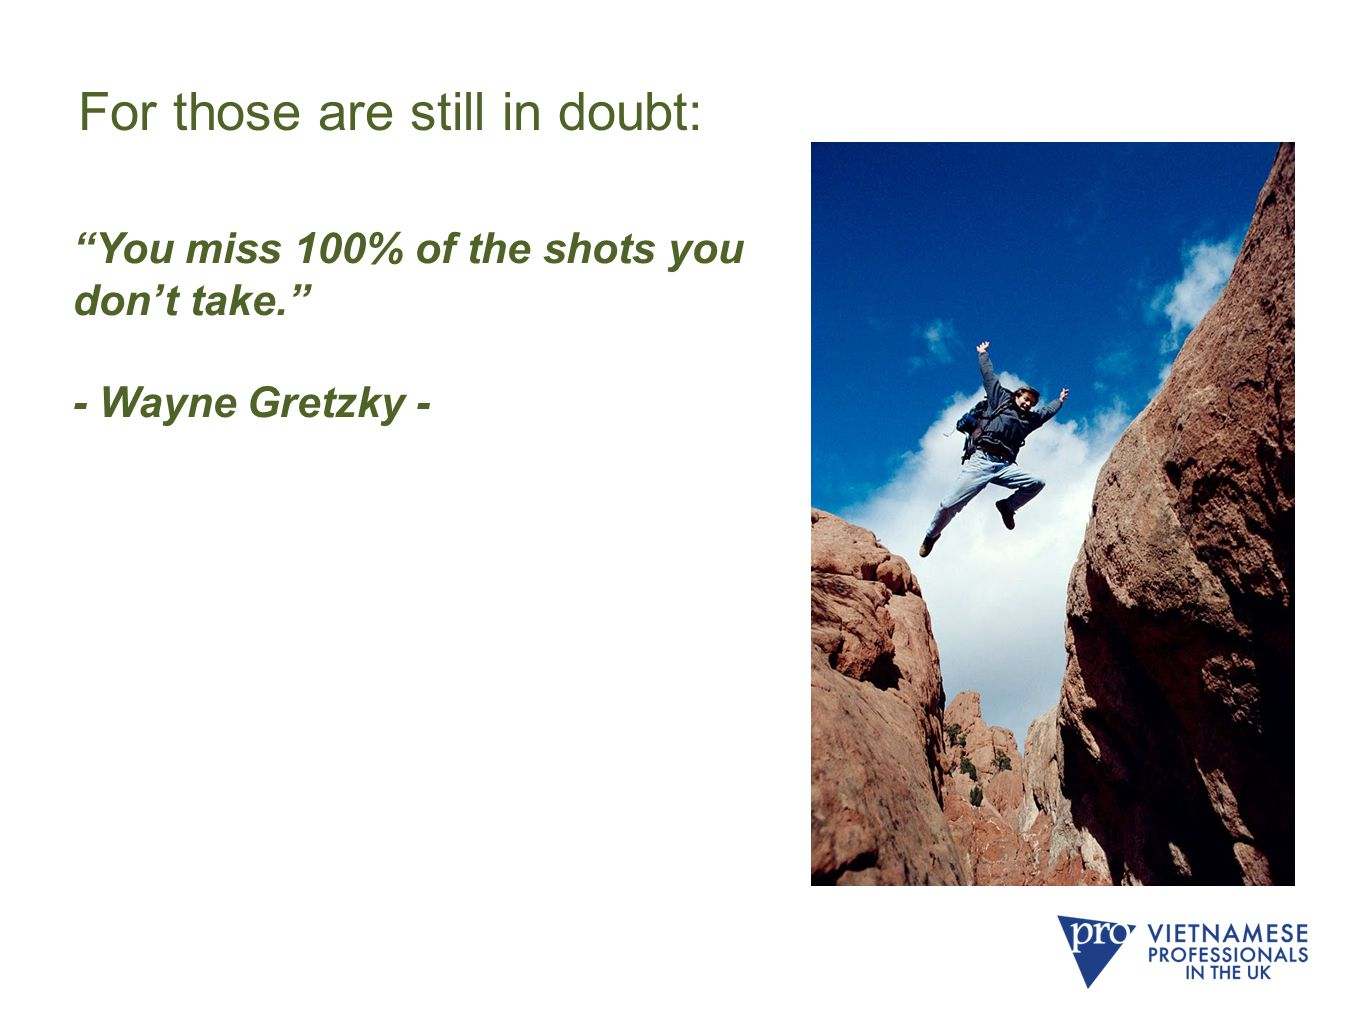 You miss 100% of the shots you don't take. - Wayne Gretzky - For those are still in doubt: